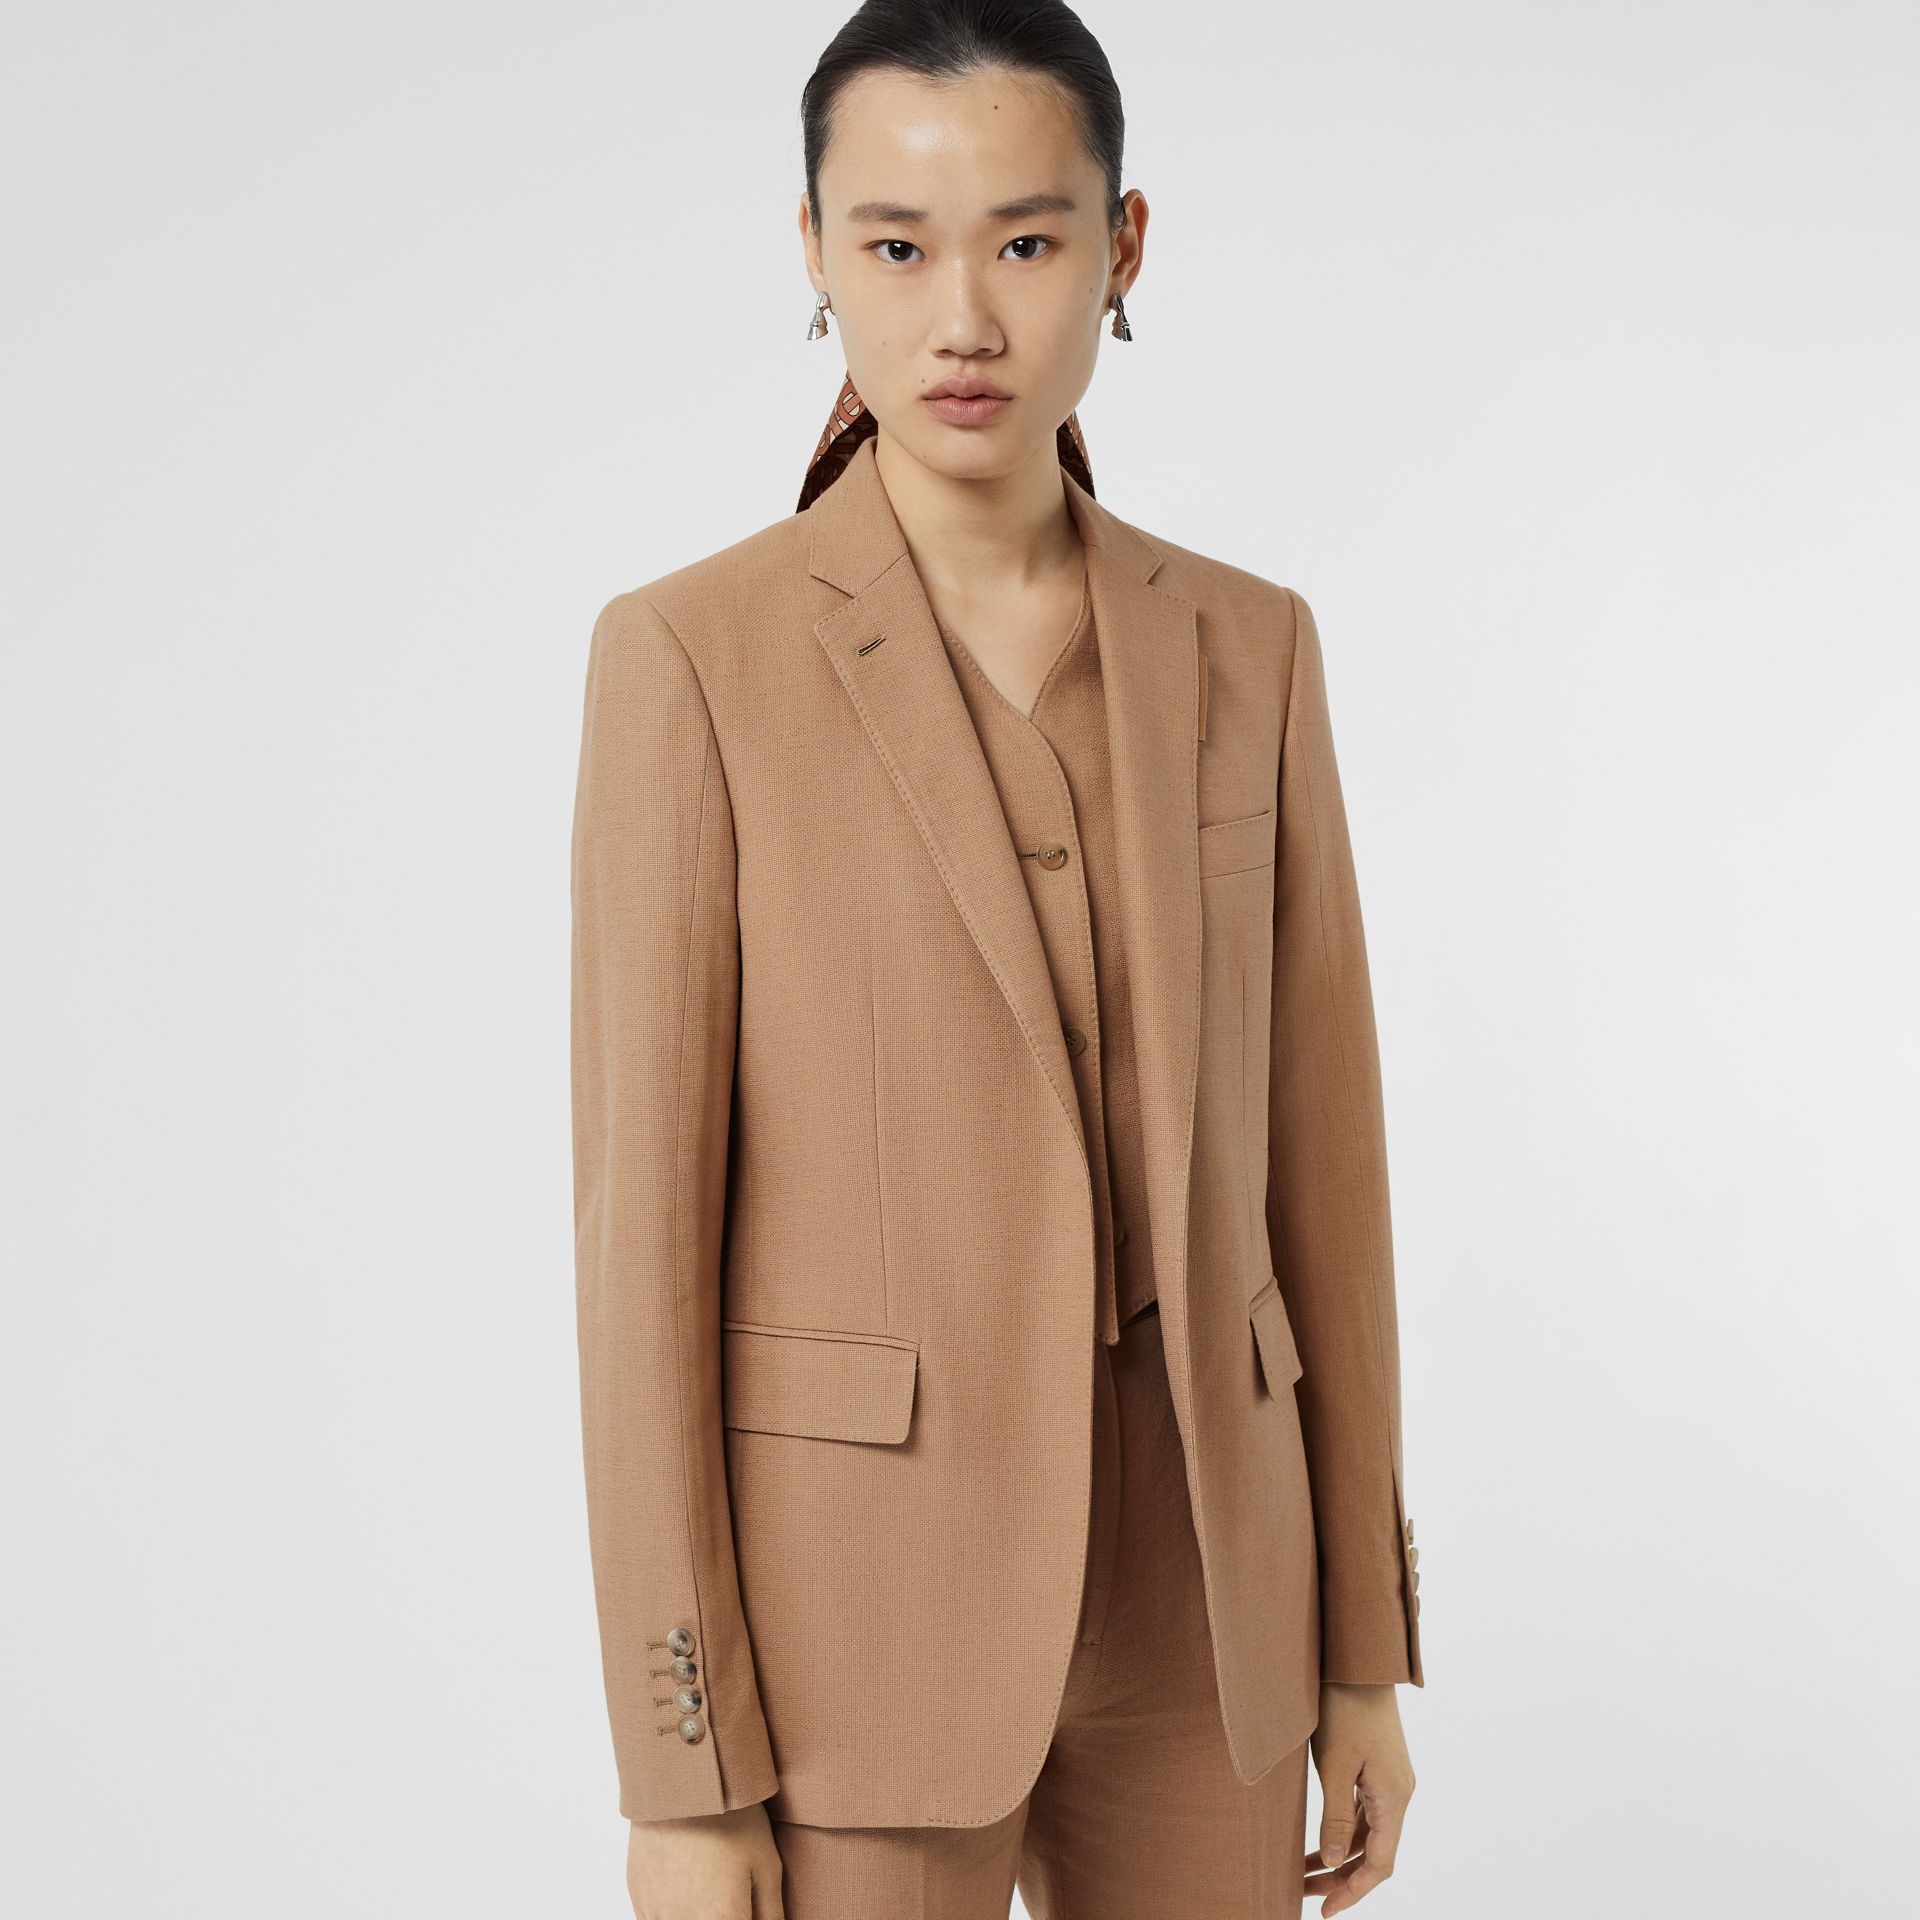 Vest Detail Cotton Linen Tailored Jacket in Ceramic Brown - Women | Burberry Canada - gallery image 4